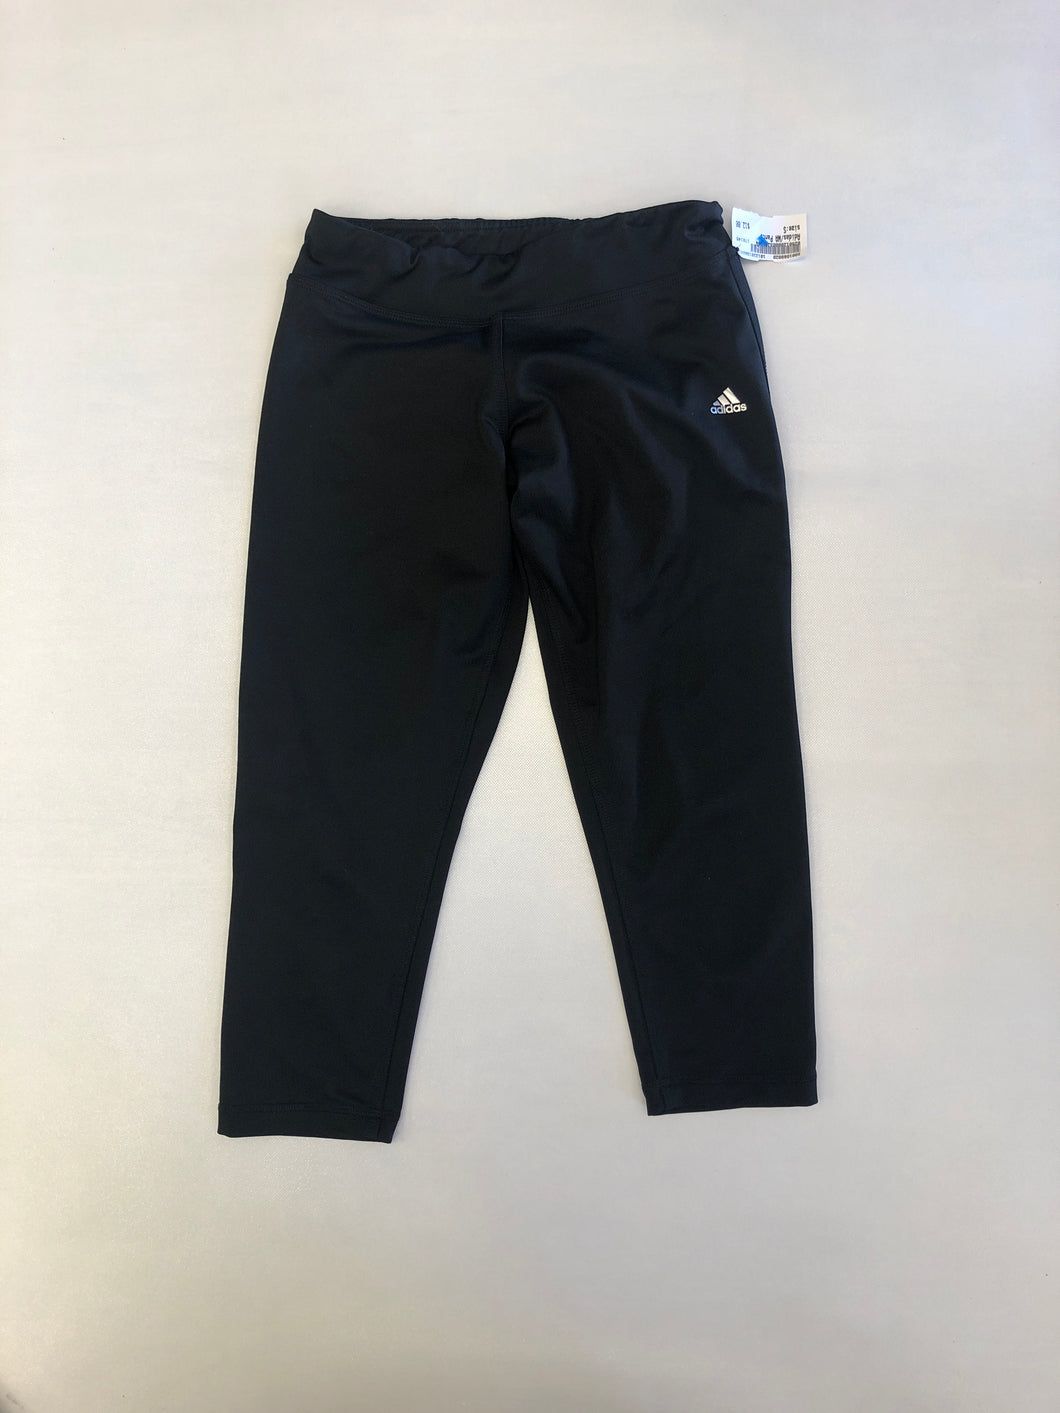 Adidas Womens Athletic Pants Size Small